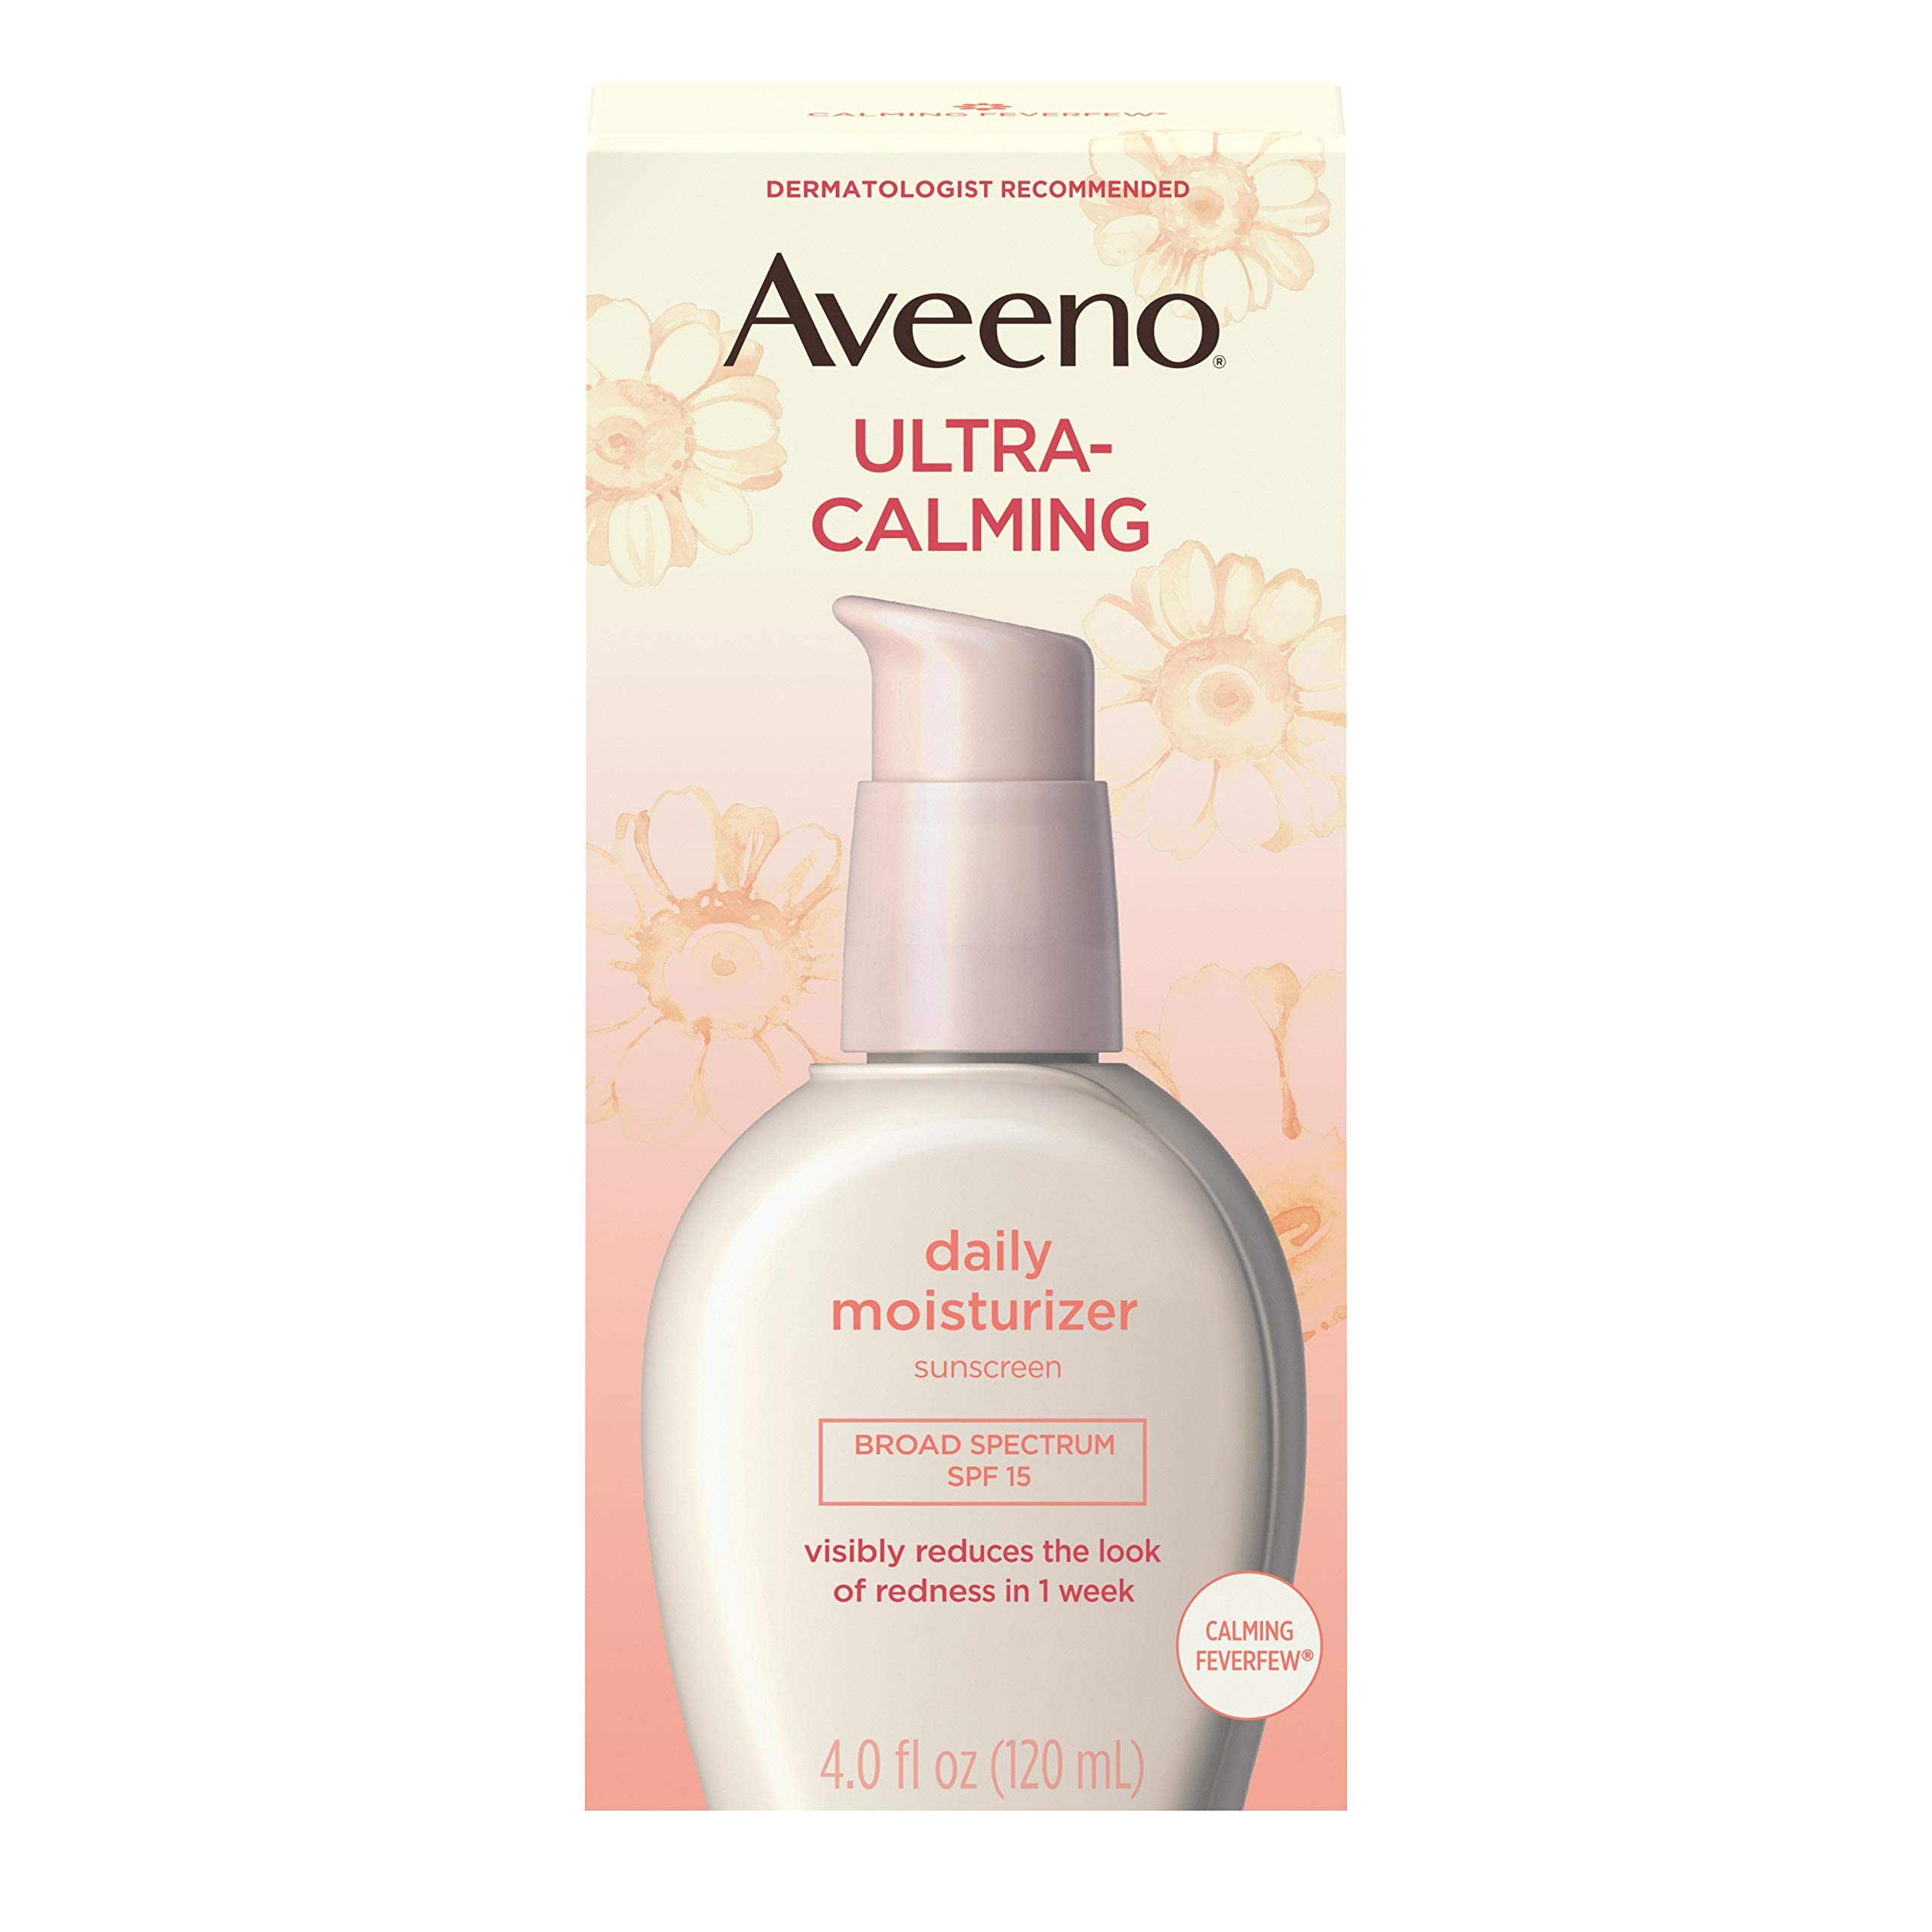 Aveeno Ultra-Calming Fragrance-Free Daily Facial Moisturizer for Sensitive, Dry Skin with SPF 15 Sunscreen, Calming Feverfew & Nourishing Oat, 4 fl. oz by Aveeno